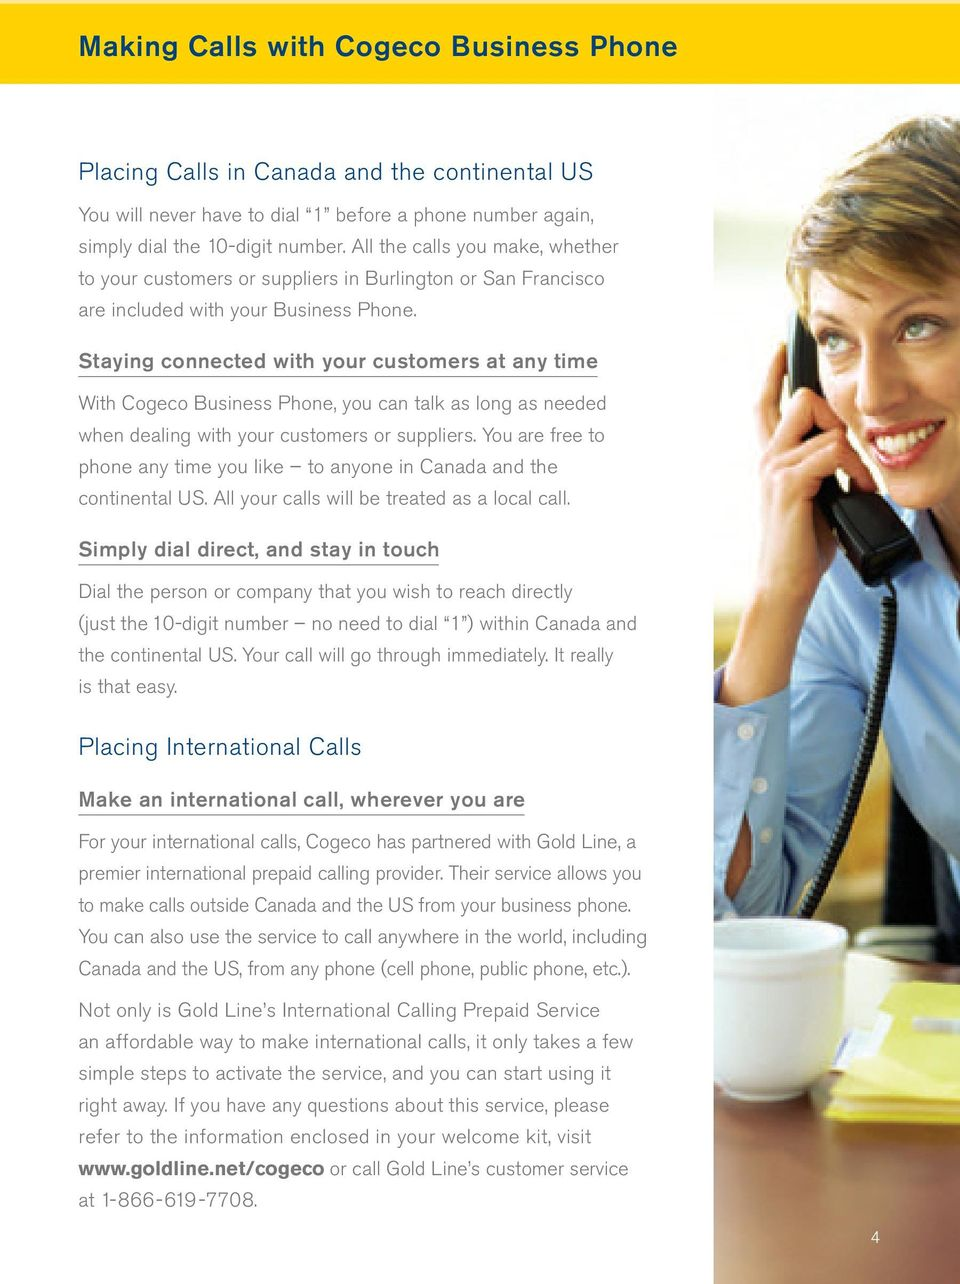 Staying connected with your customers at any time With Cogeco Business Phone, you can talk as long as needed when dealing with your customers or suppliers.